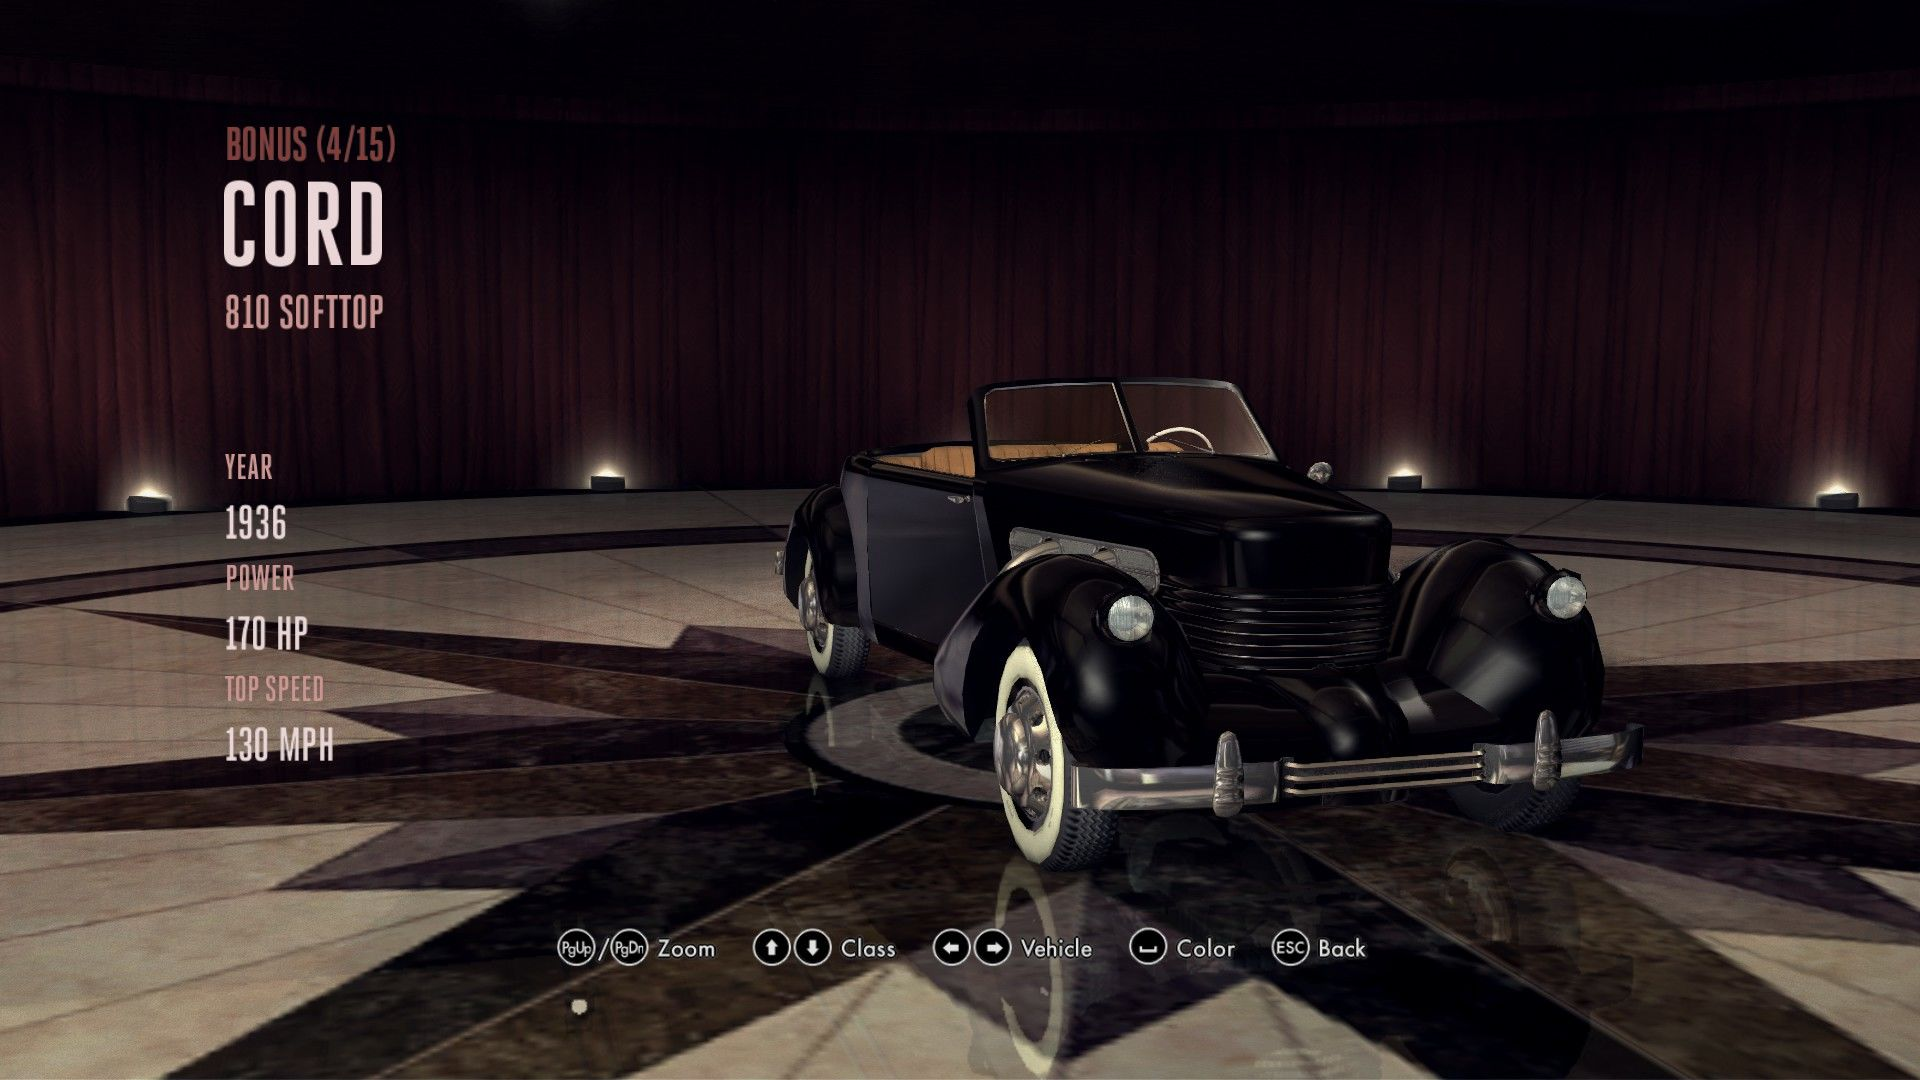 L.A. Noire: The Complete Edition Windows Unlocked vehicle in the showroom